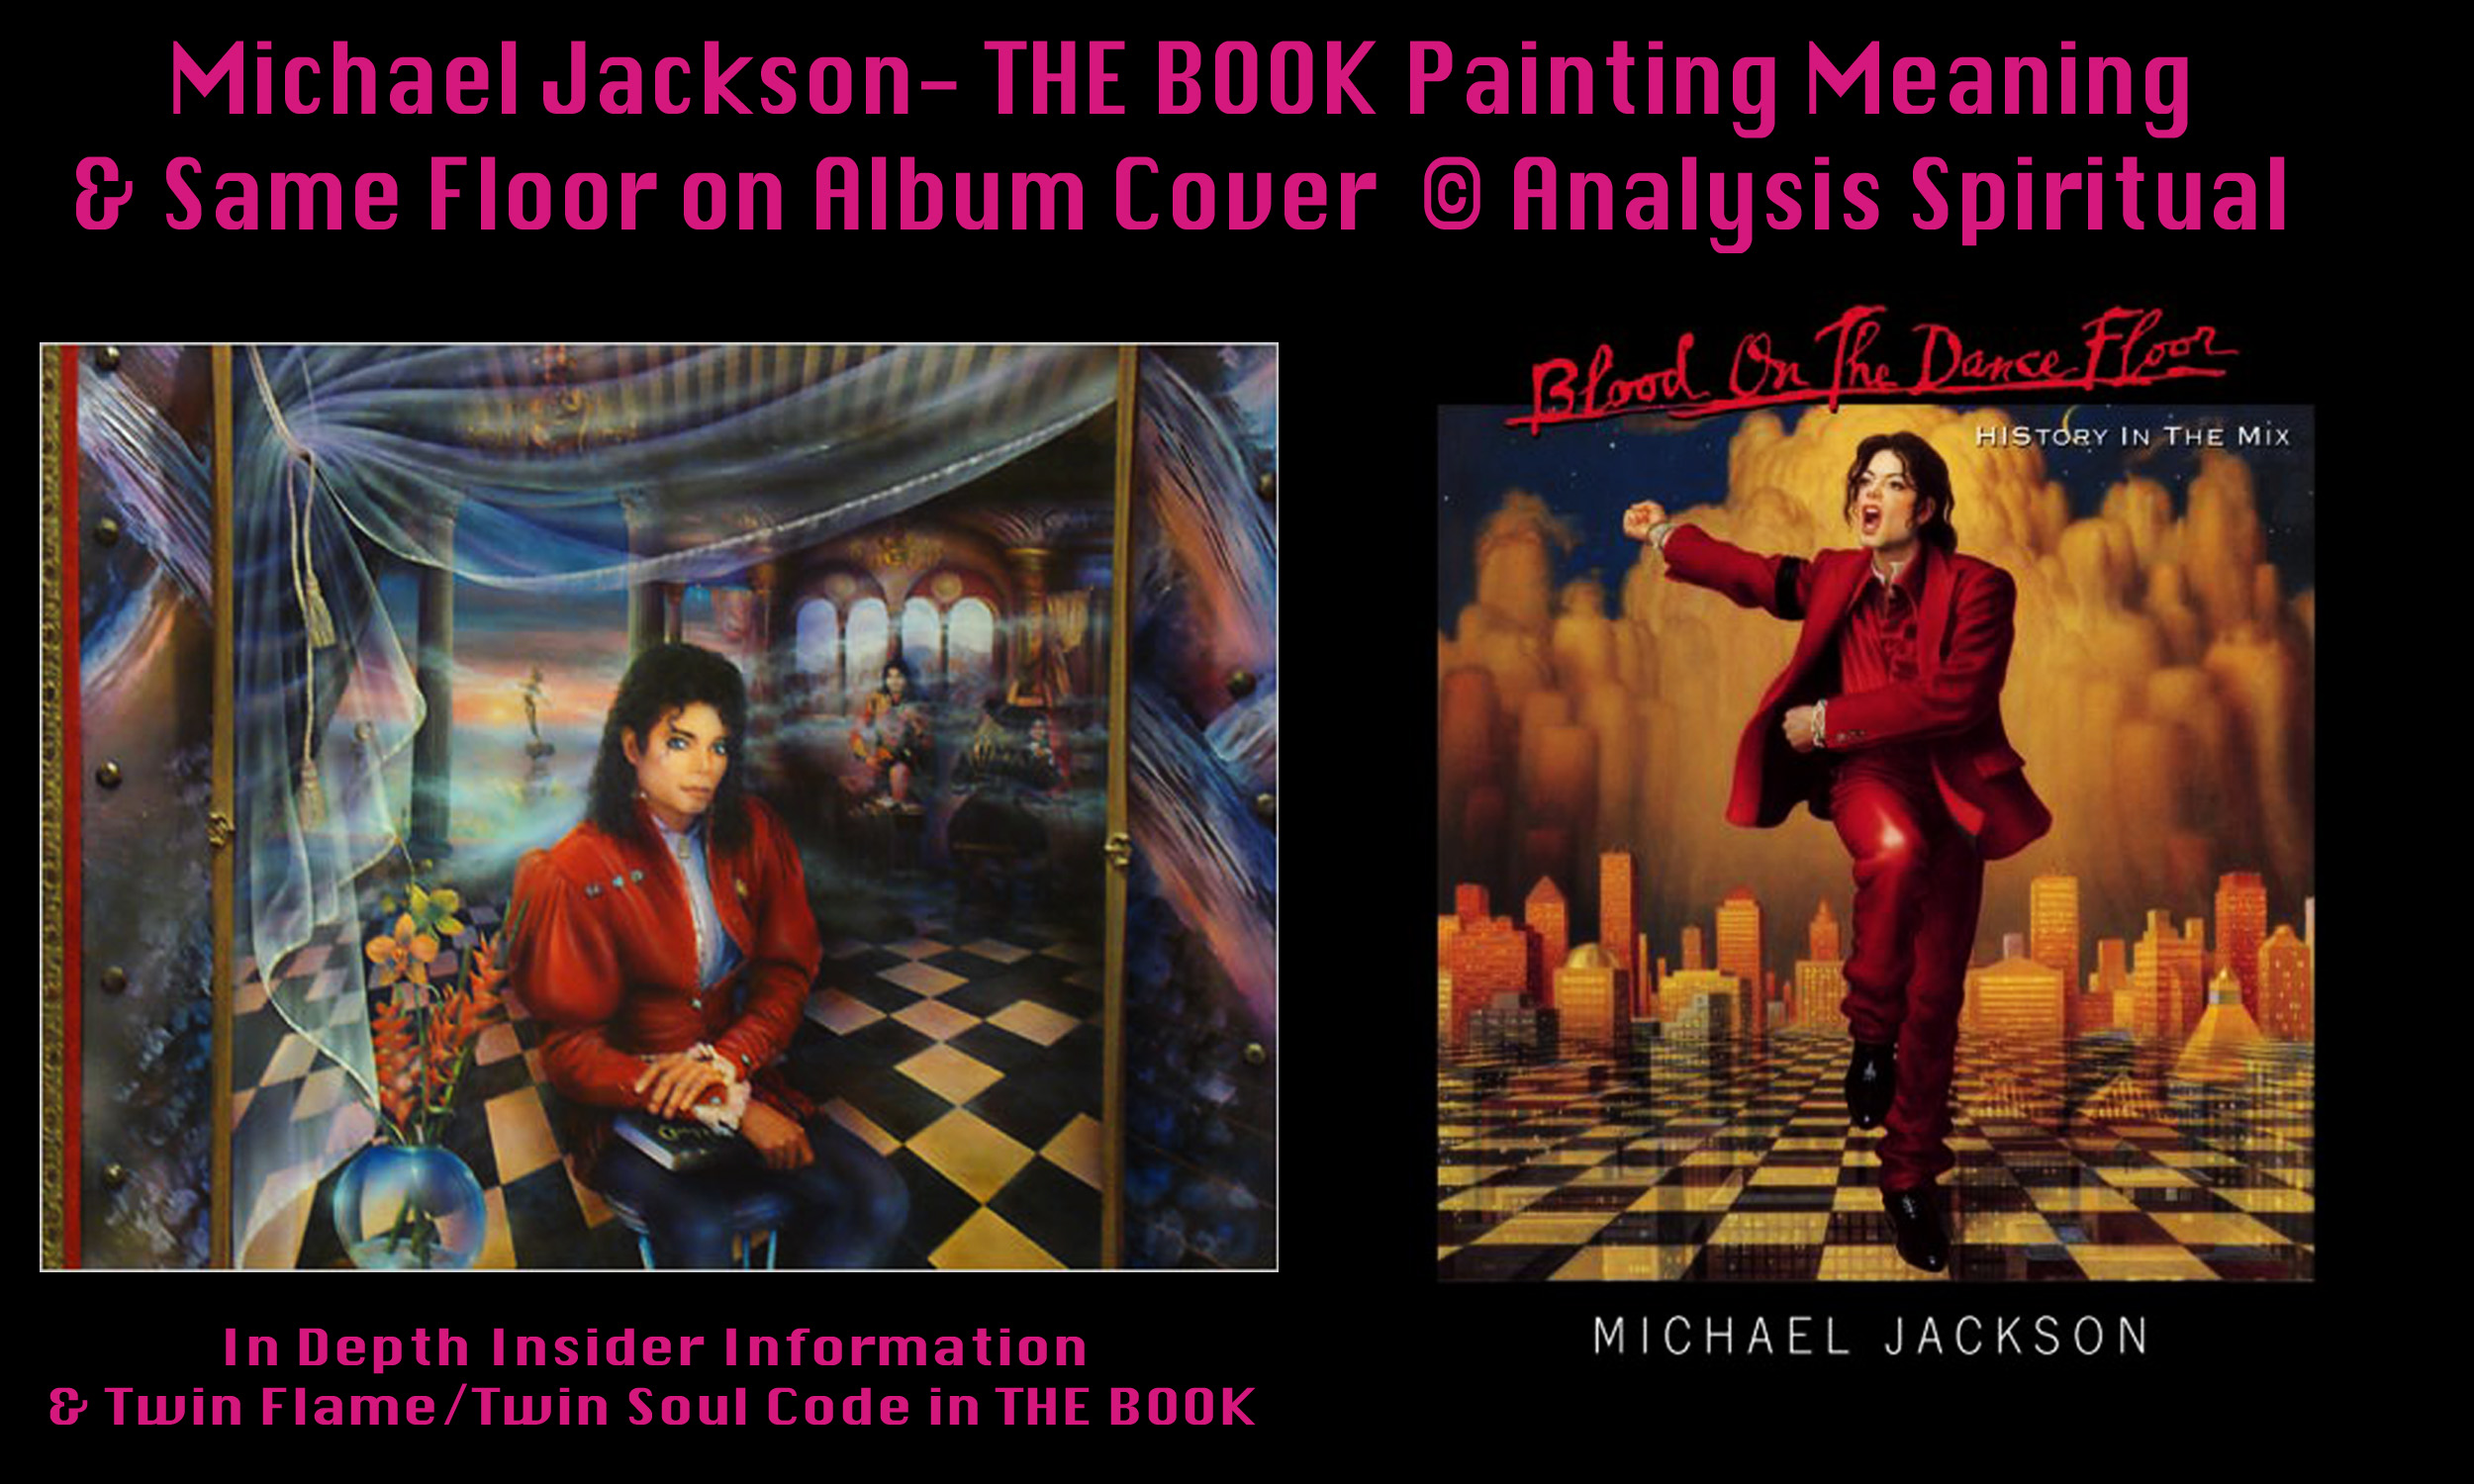 Michael jacksons blood on the dance floor visionary for On the floor meaning